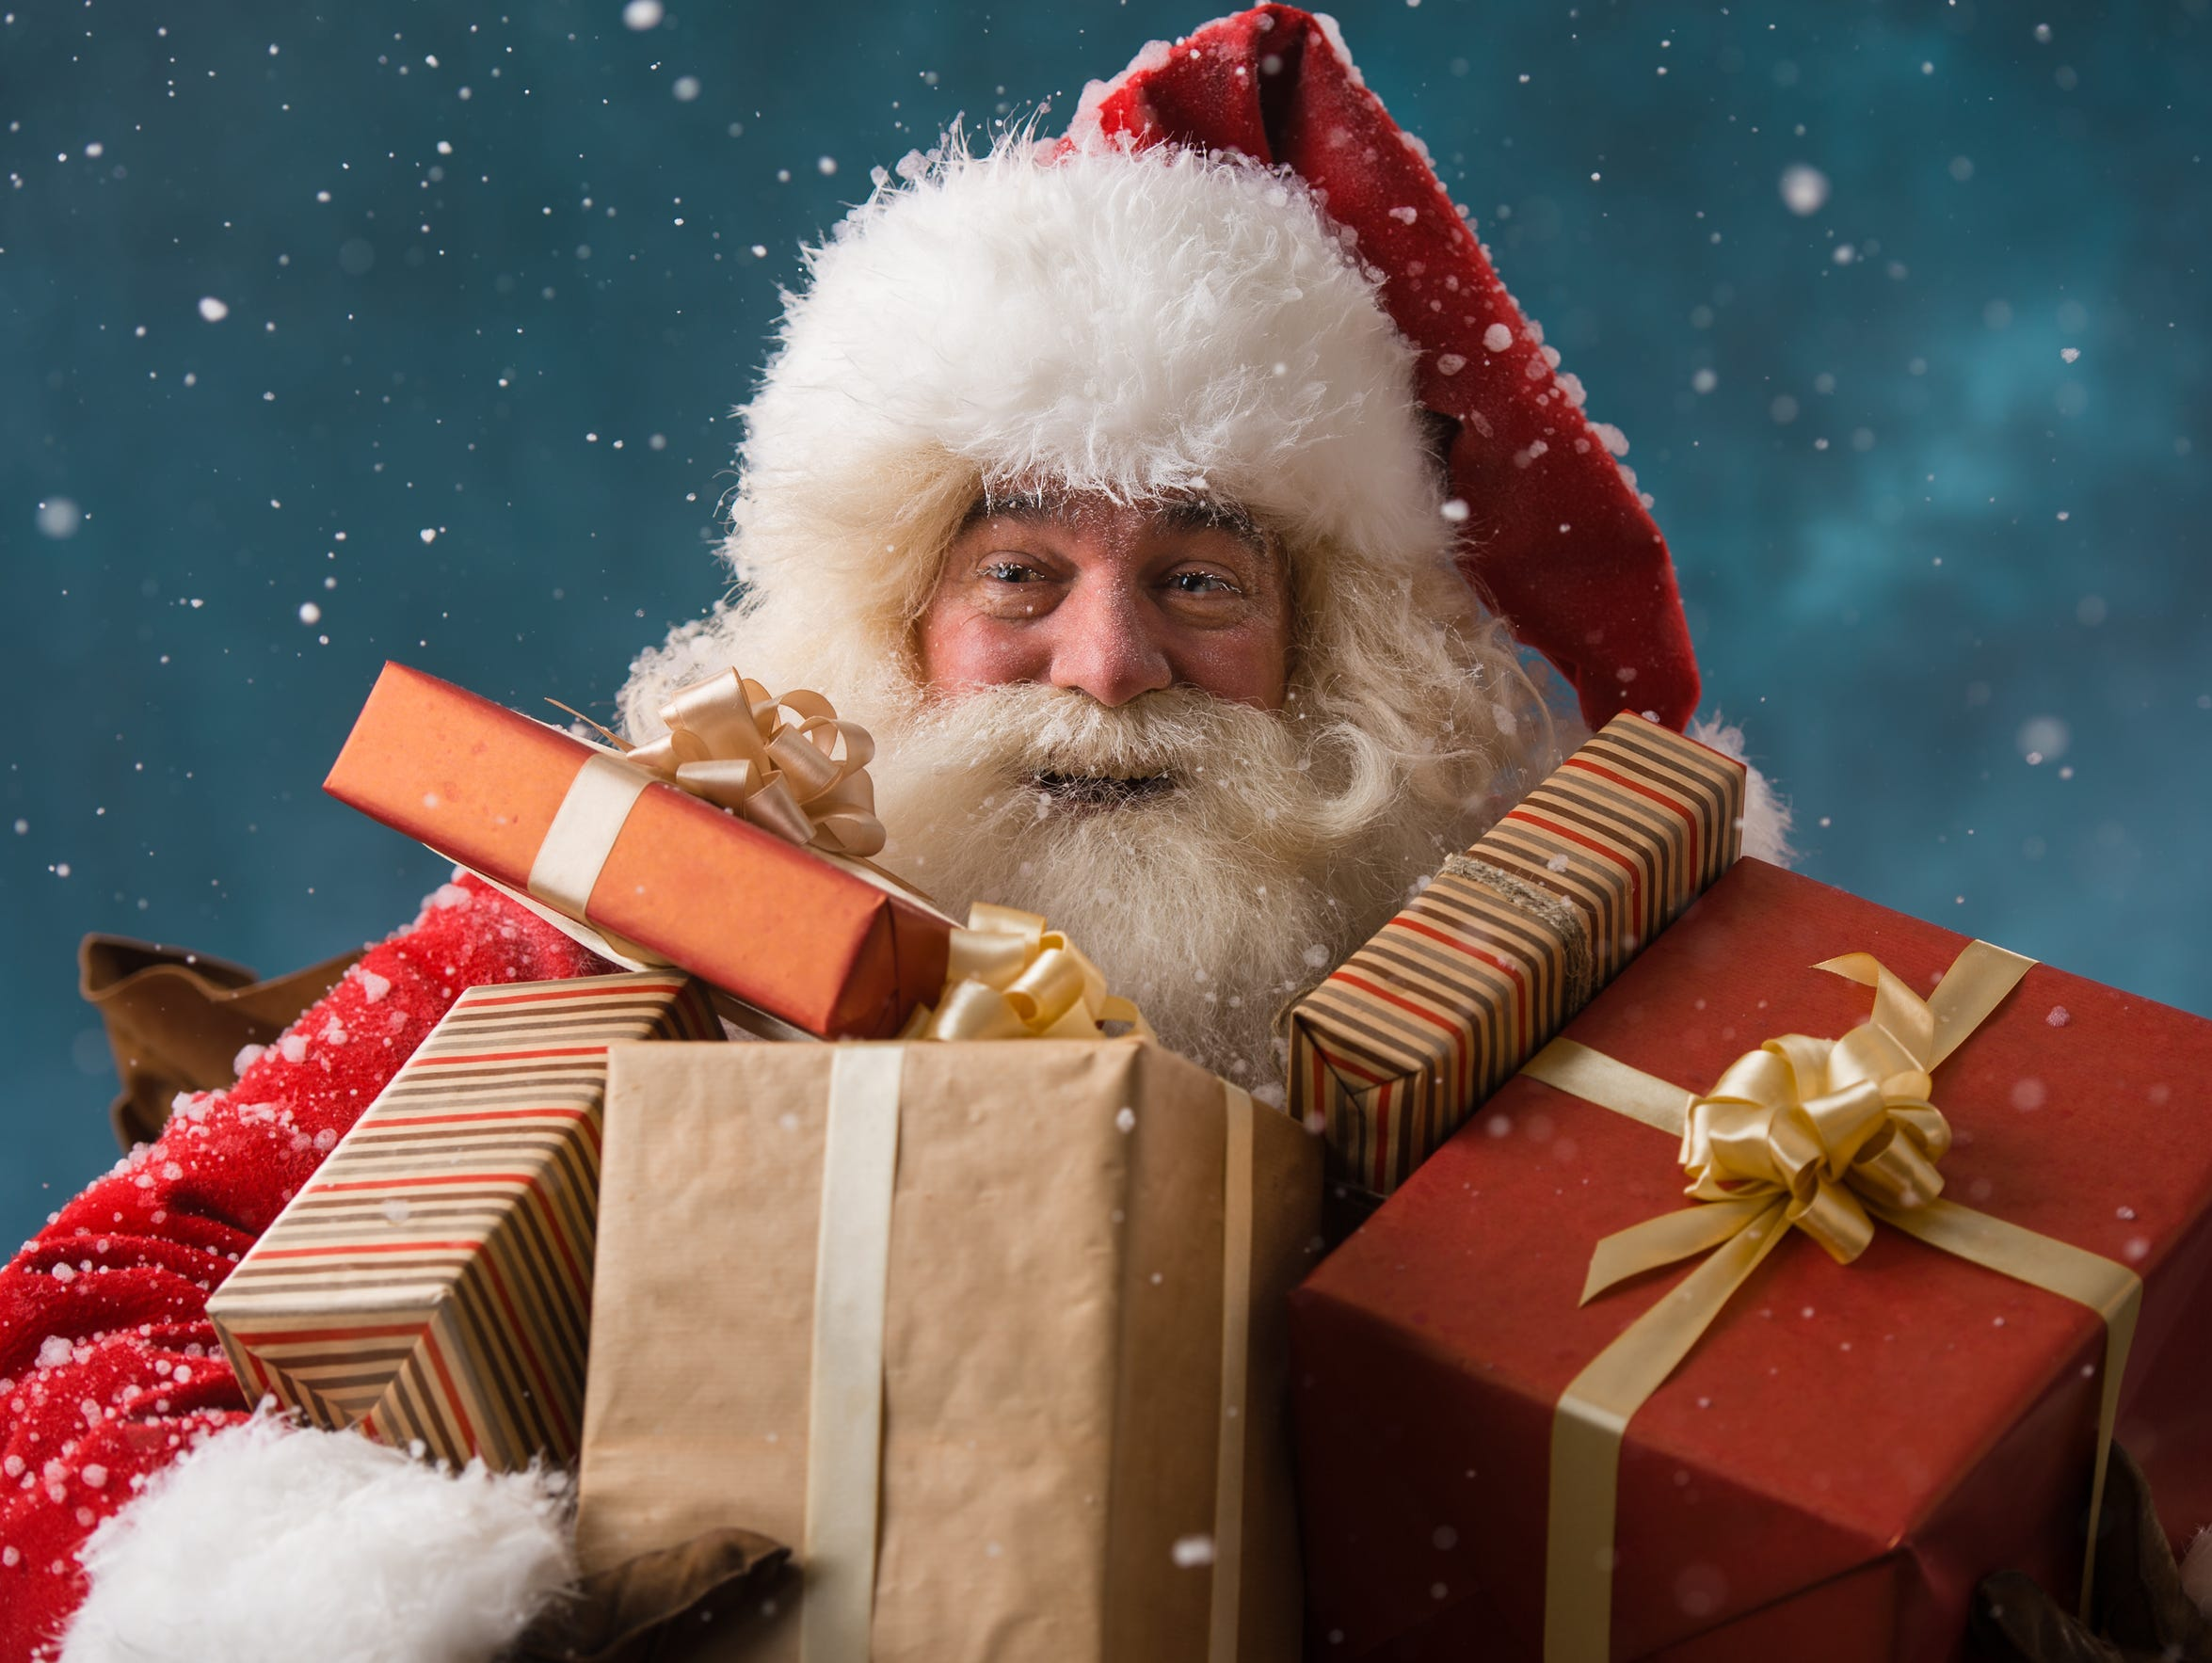 Shop with Santa at the Hollyday Marketplace on Saturday.